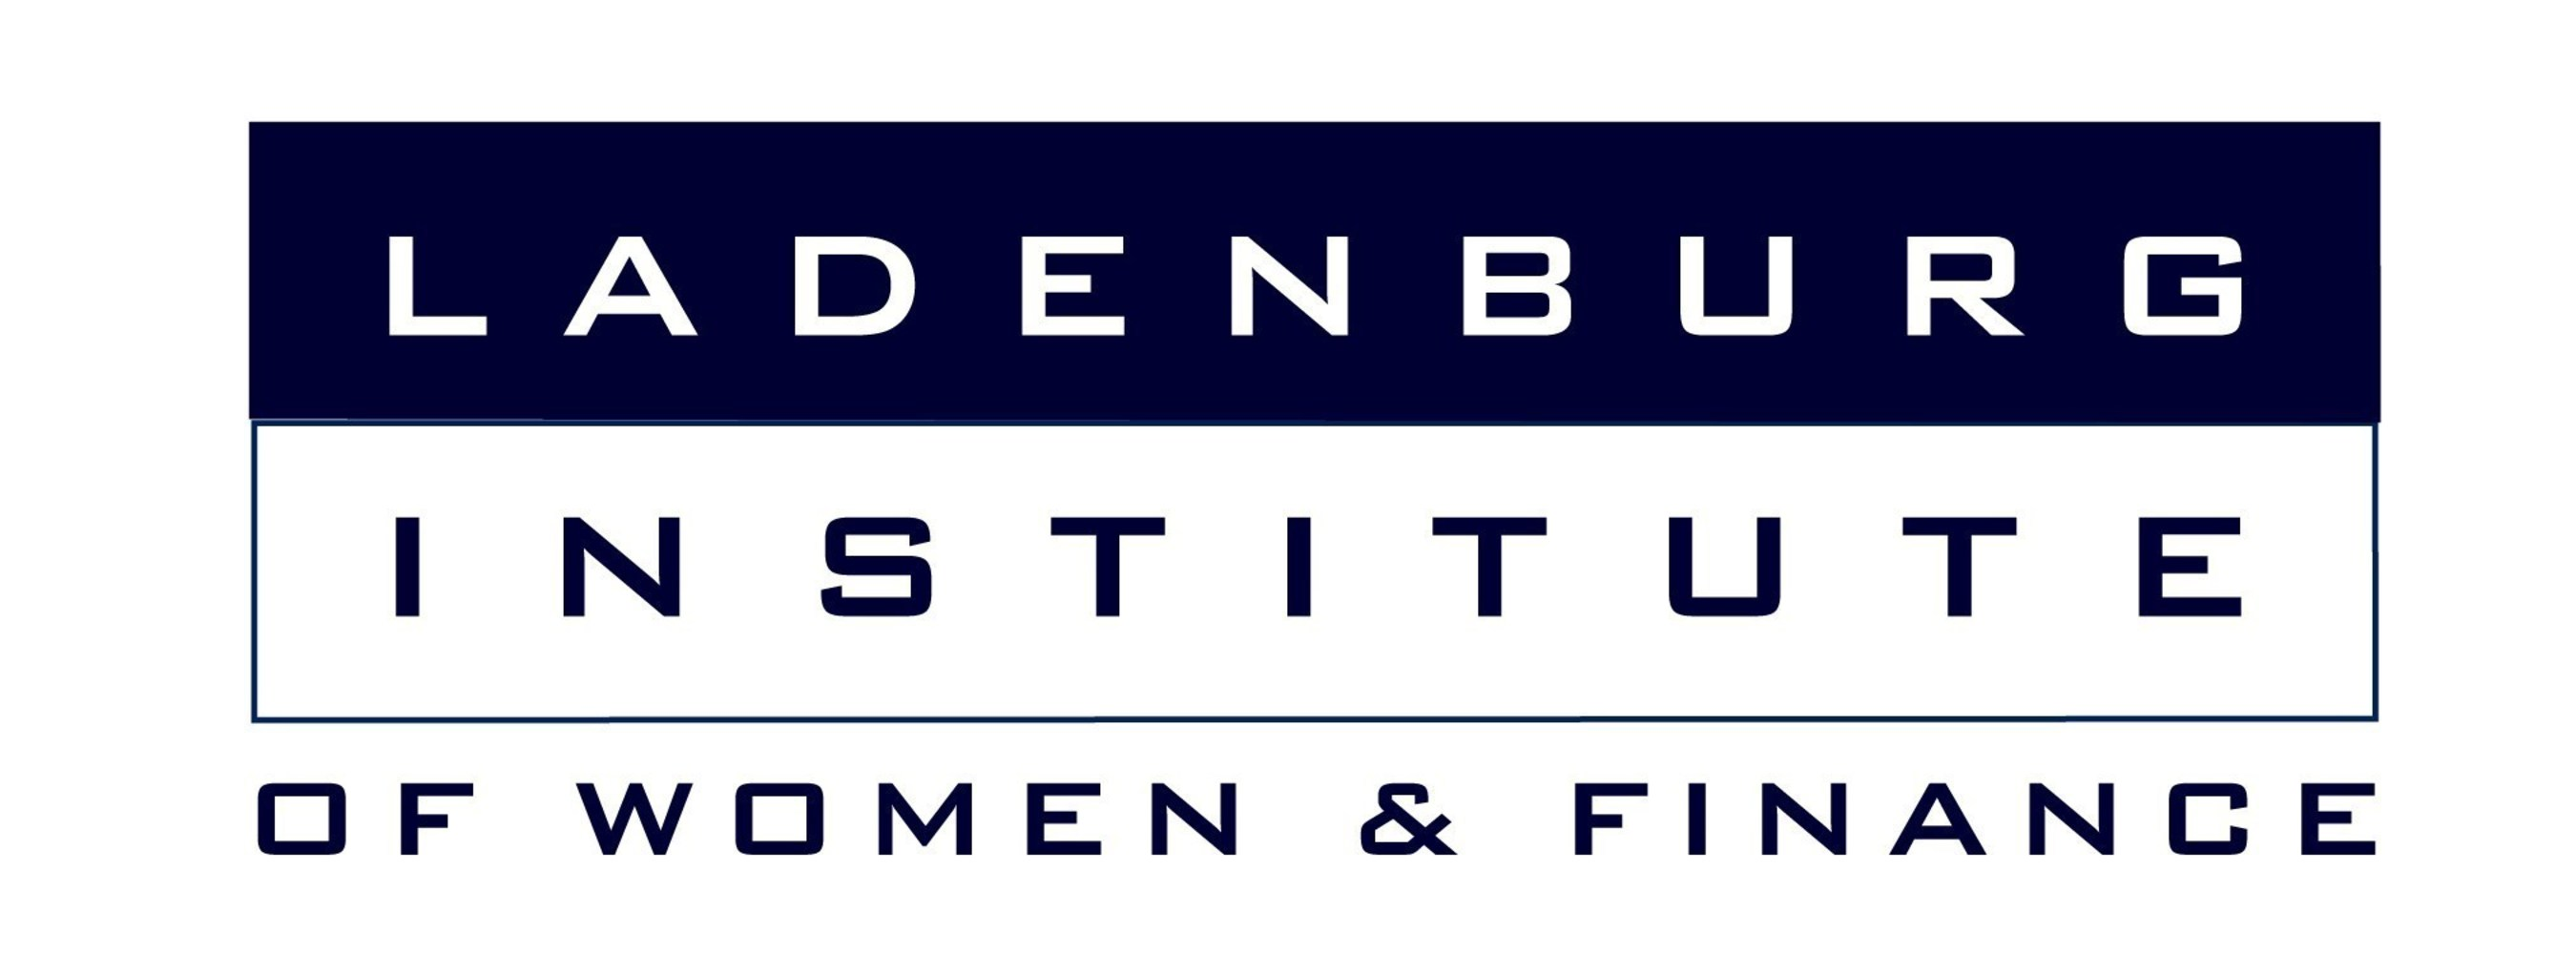 Launched in in 2012, the Ladenburg Thalmann Institute of Women and Finance (LTIWF) is an avenue that provides additional education and networking support to the family of advisors that are affiliated with Ladenburg's independent brokerage and advisory firms.